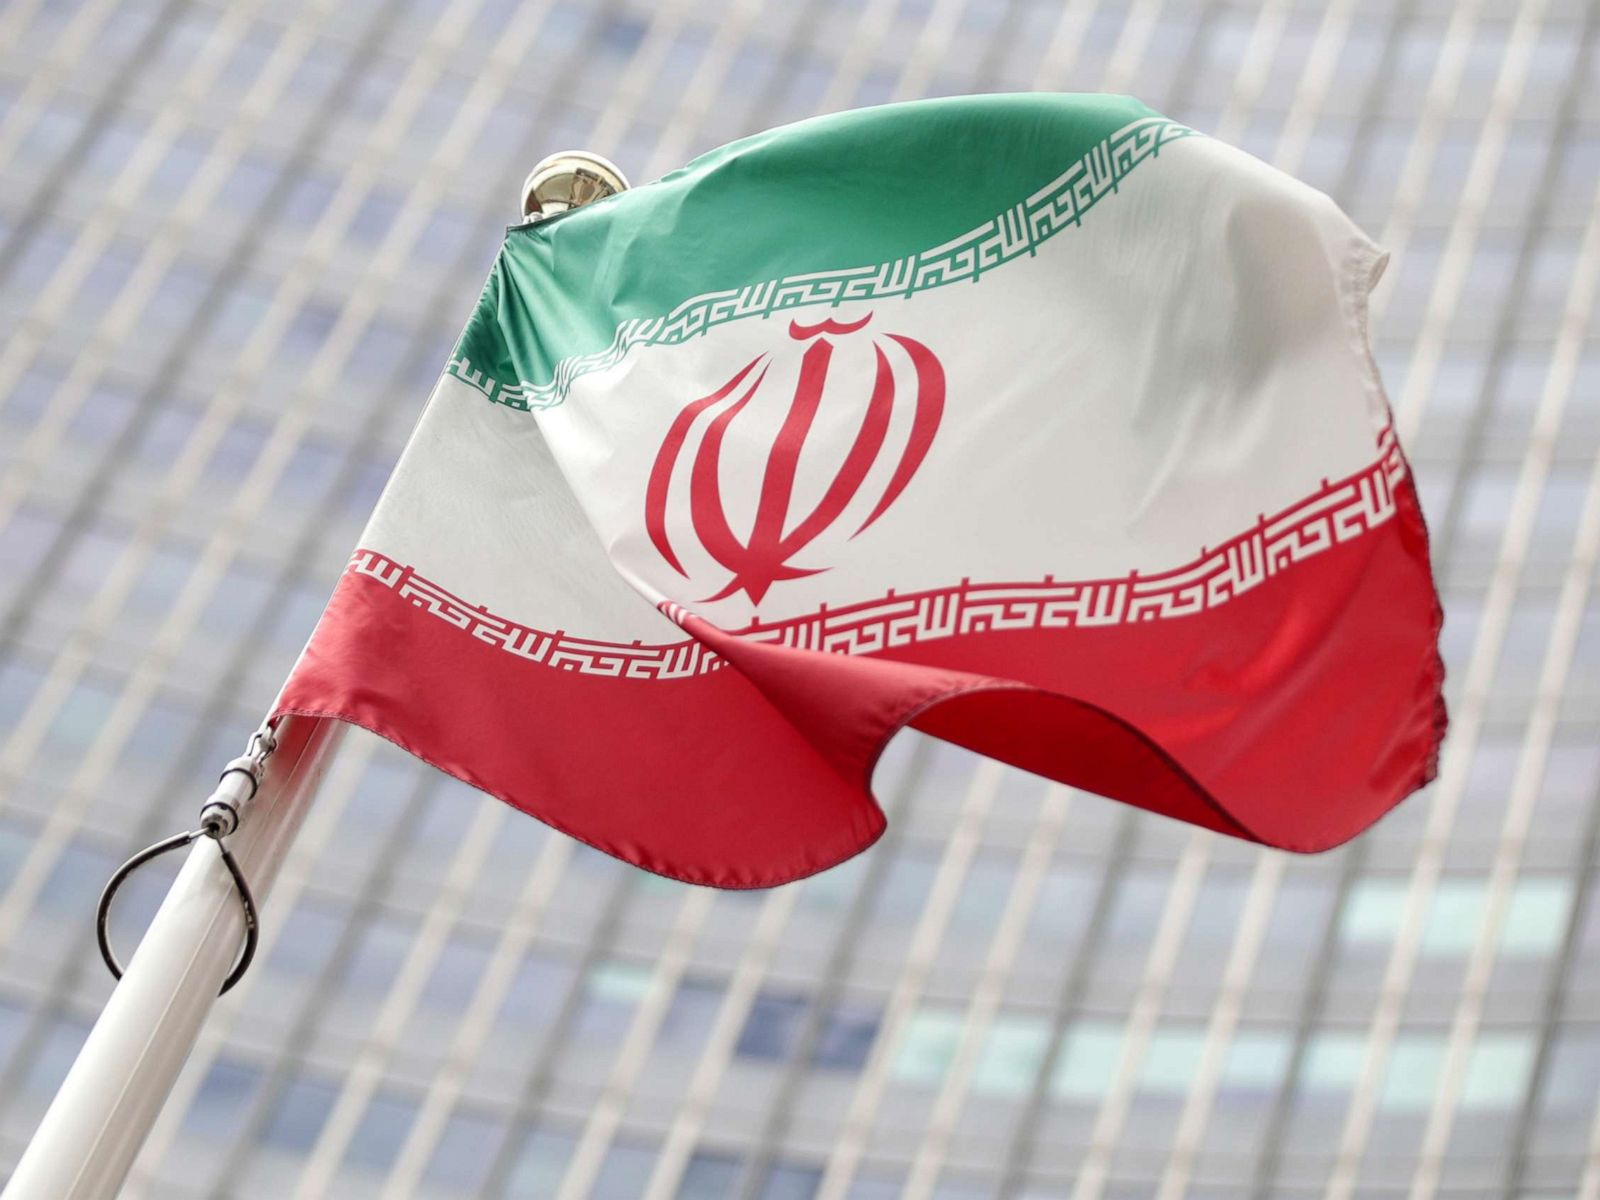 Iran says it has arrested 17 spies working for CIA, some